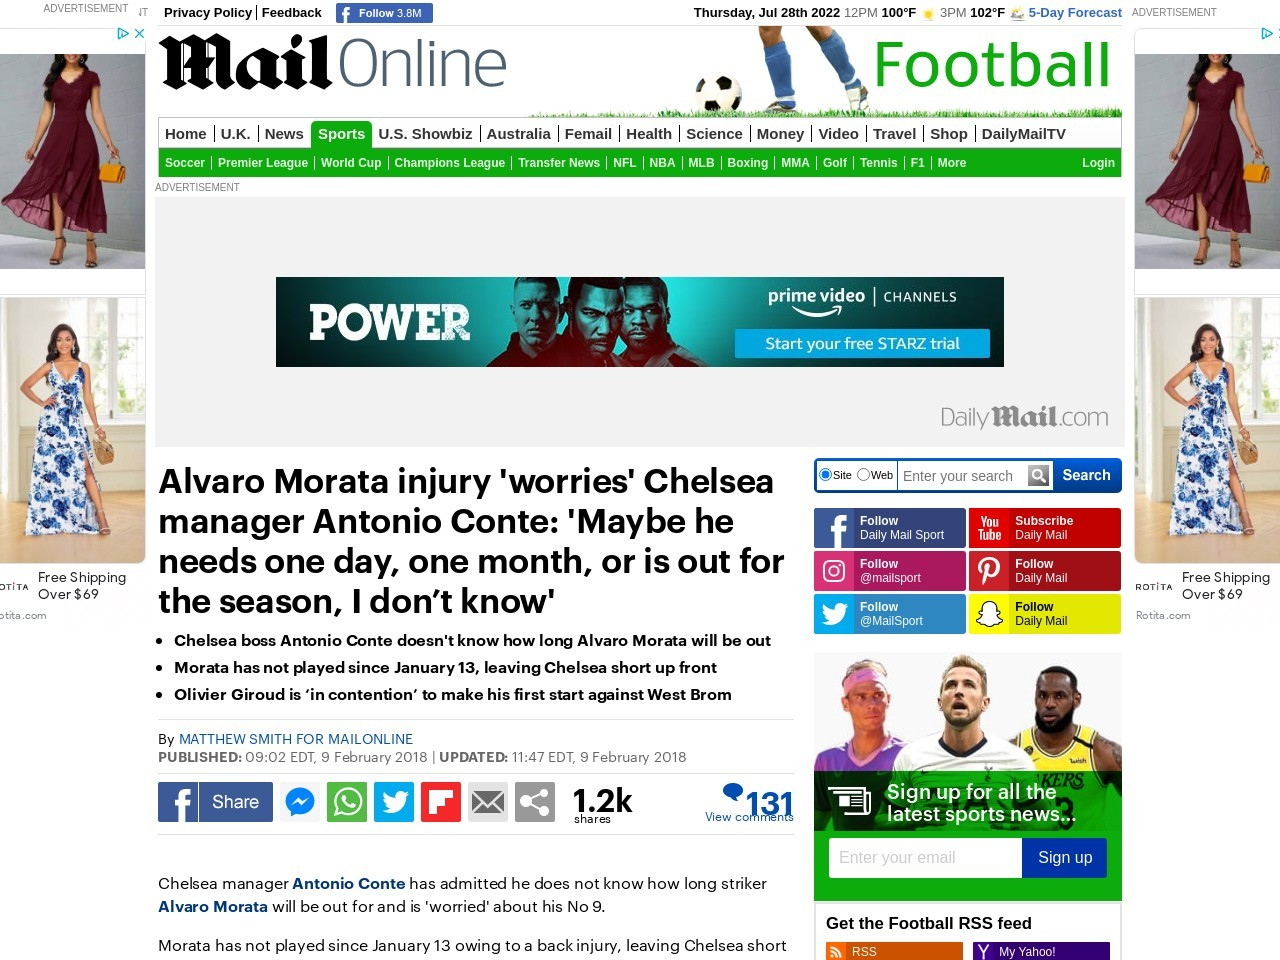 Antonio Conte 'doesn't know' how long Morata is out for